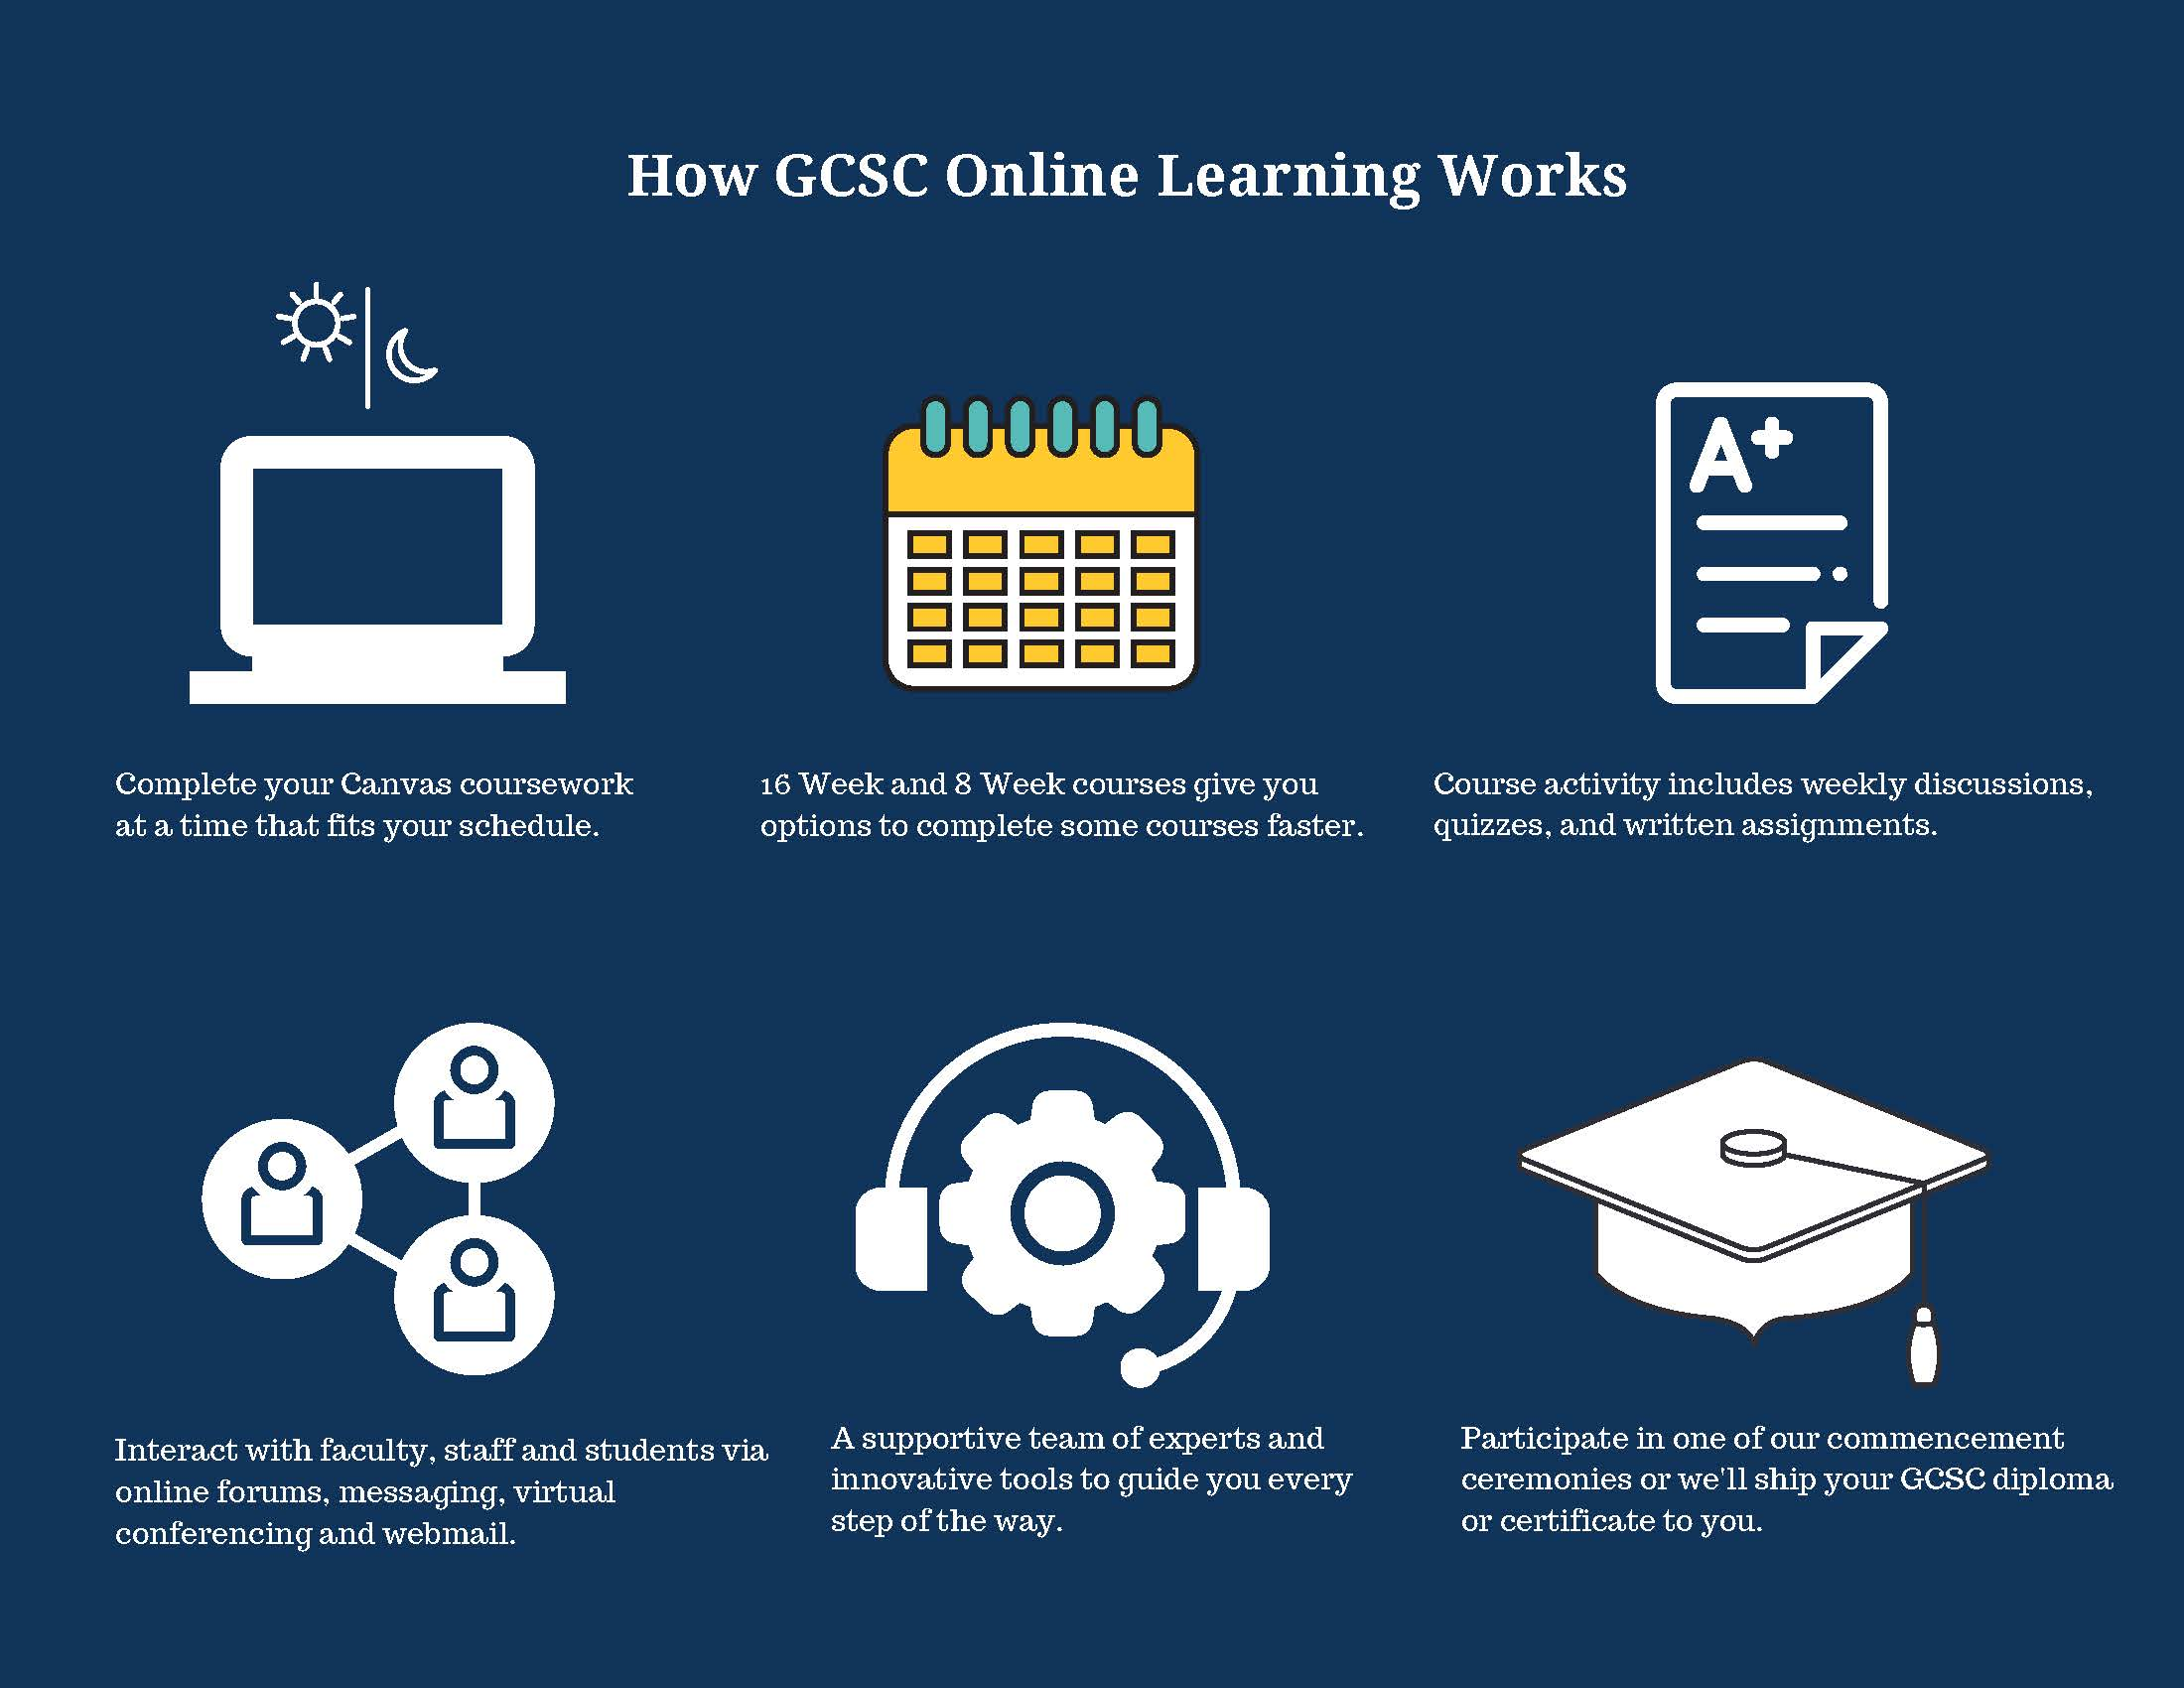 How GCSC Online Learning Works